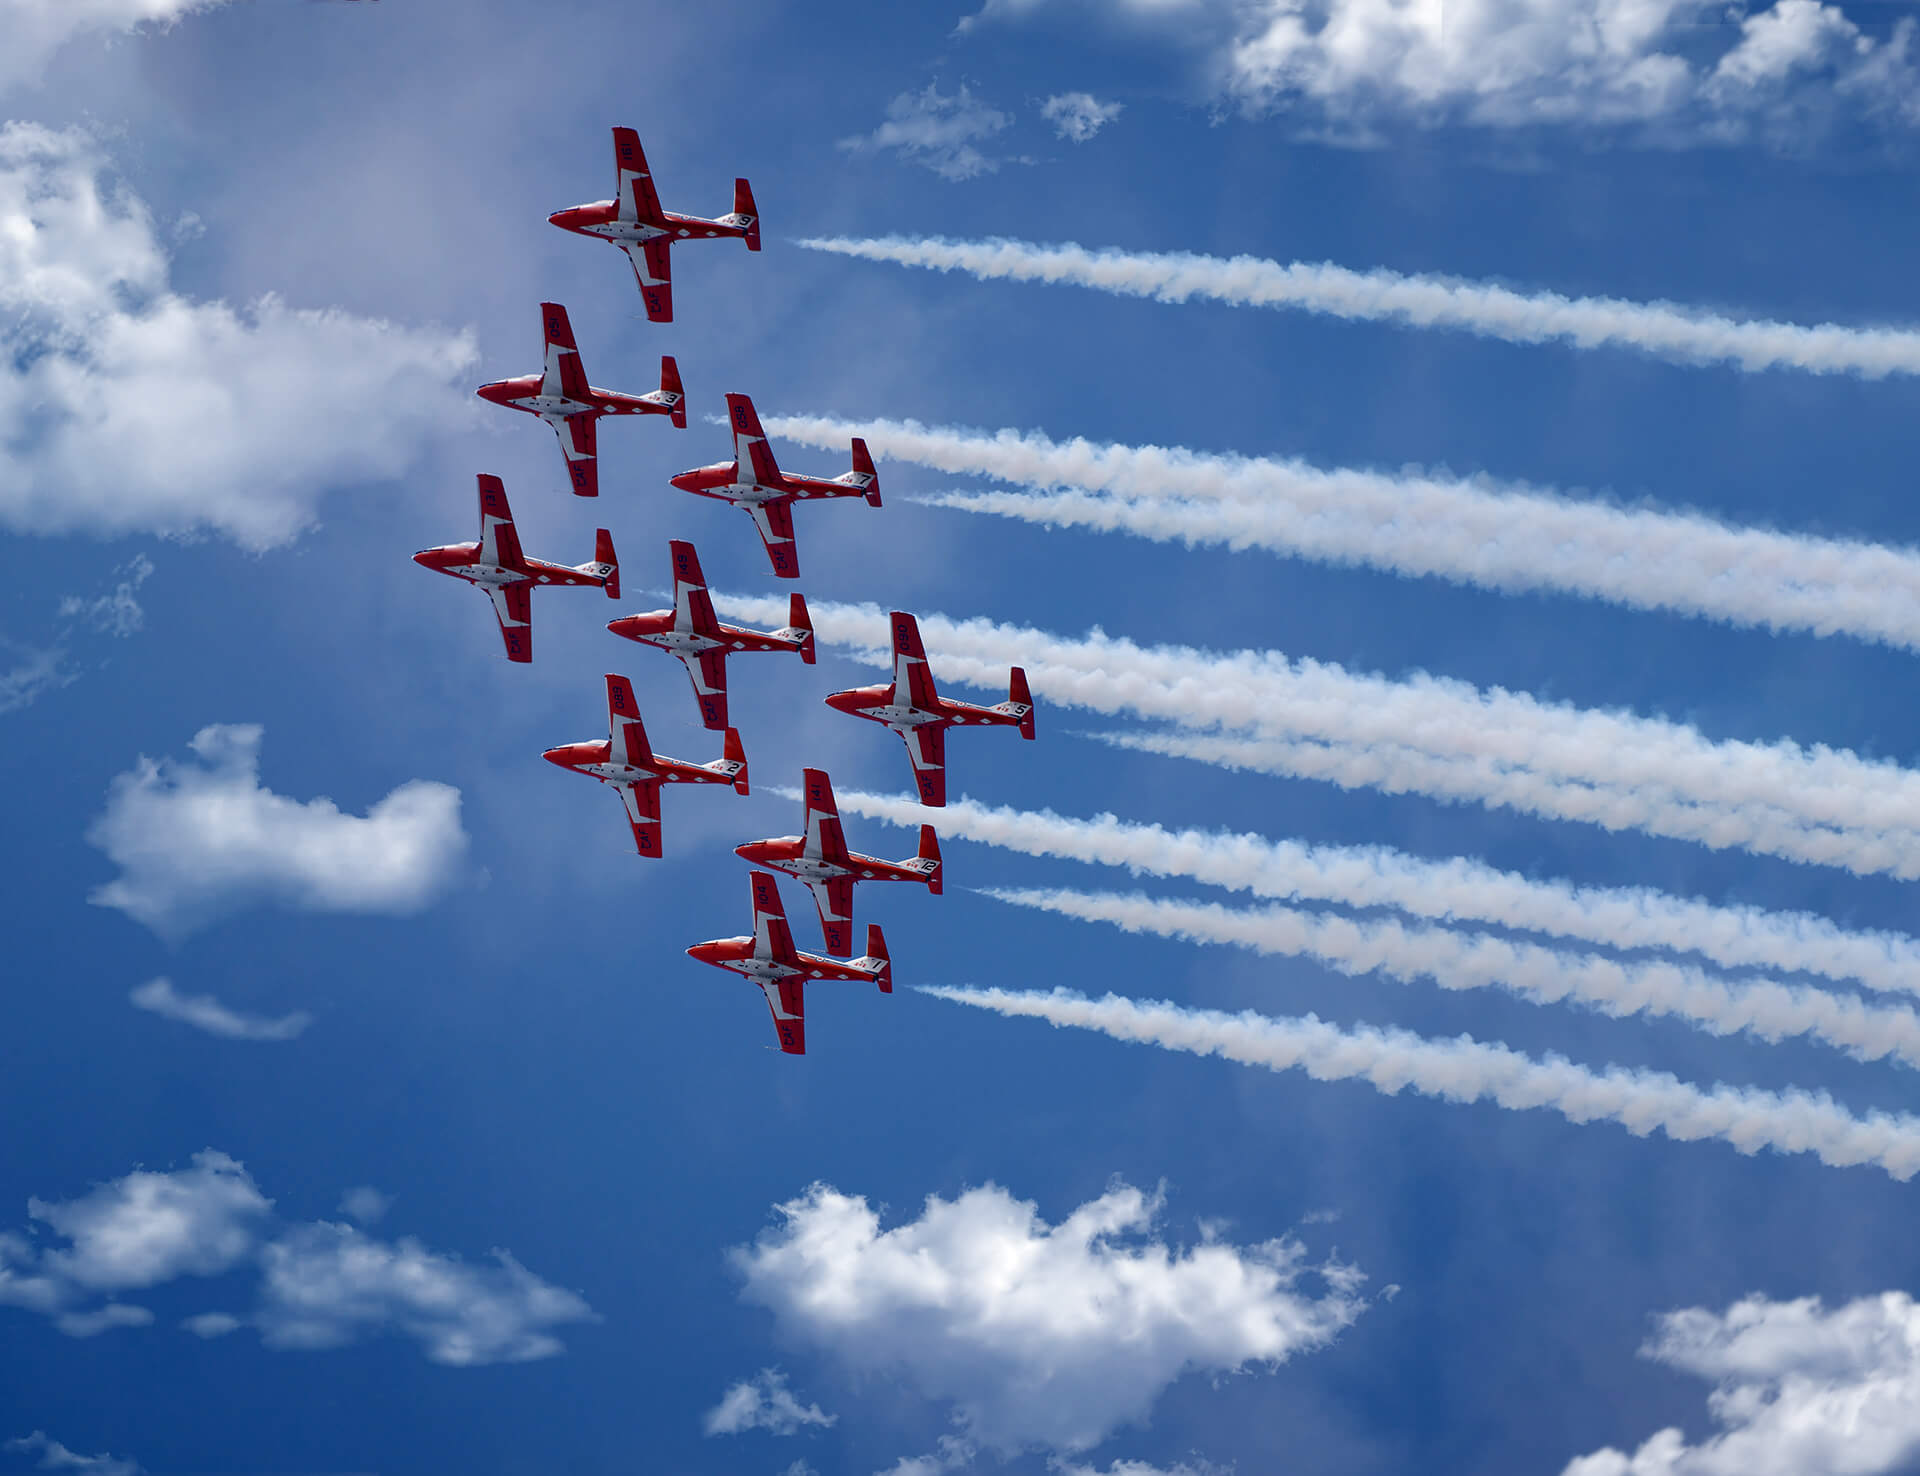 snowbirds, blue skies, in formation